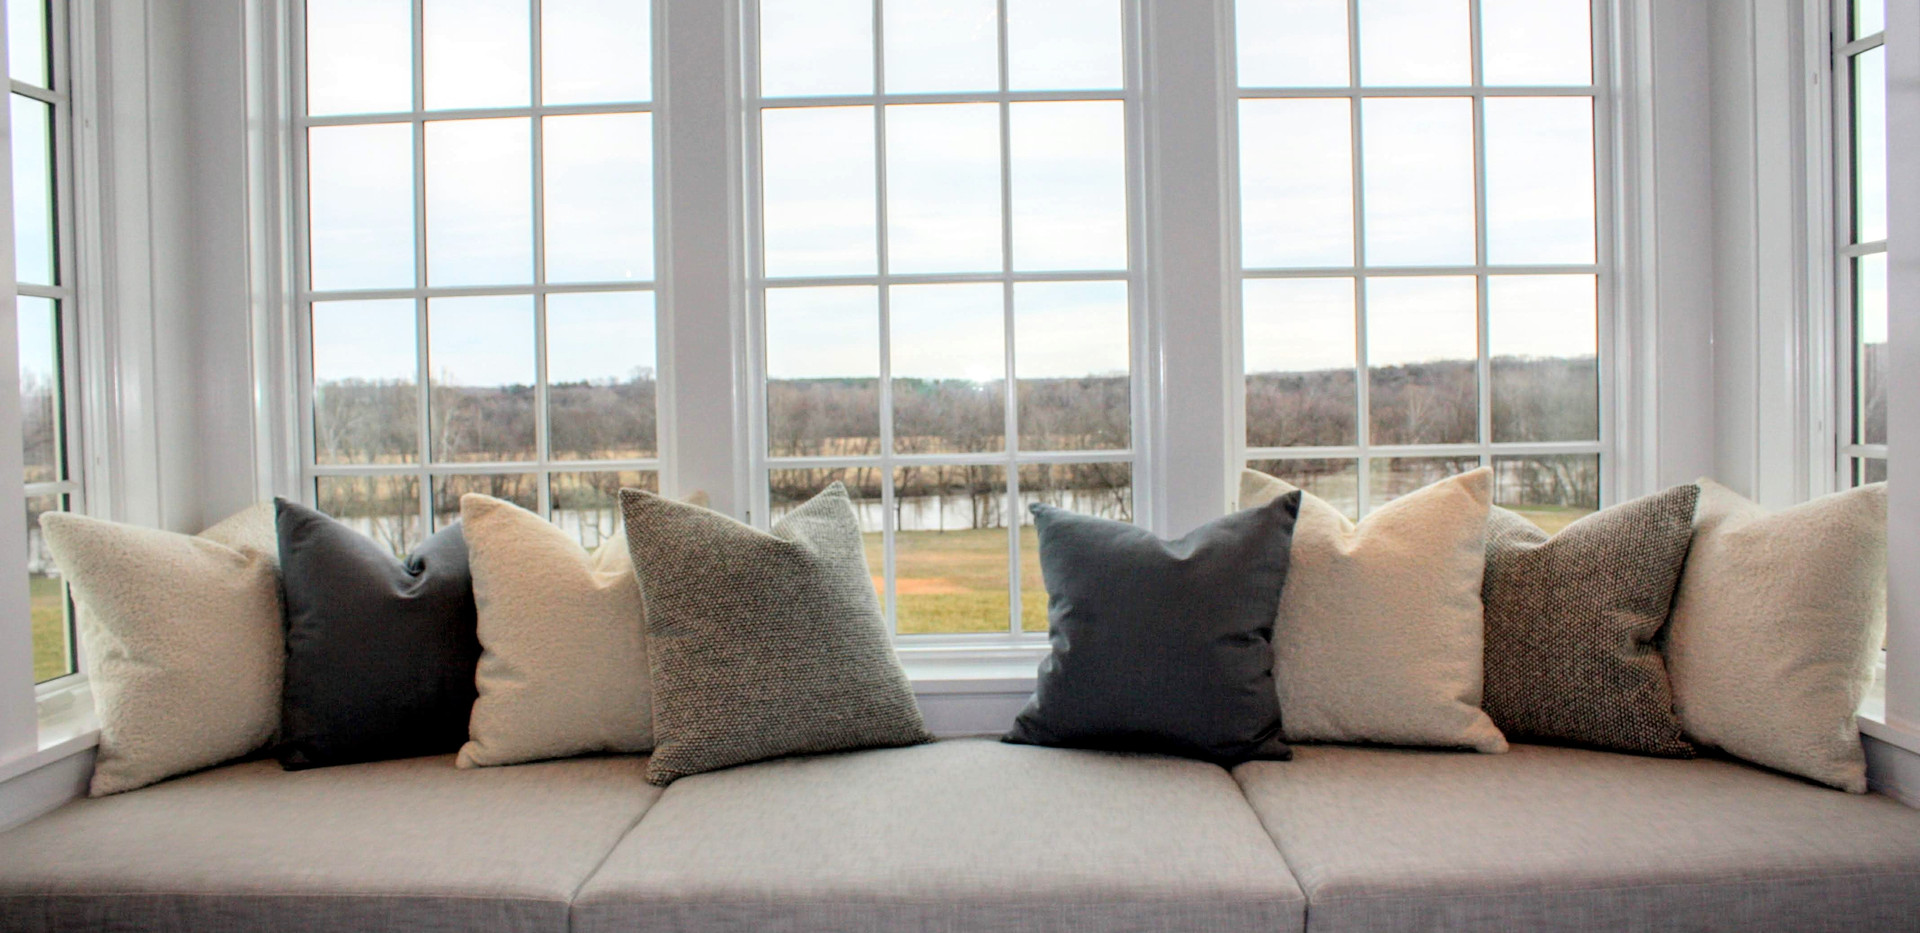 Window Seat Cushions & Pillows